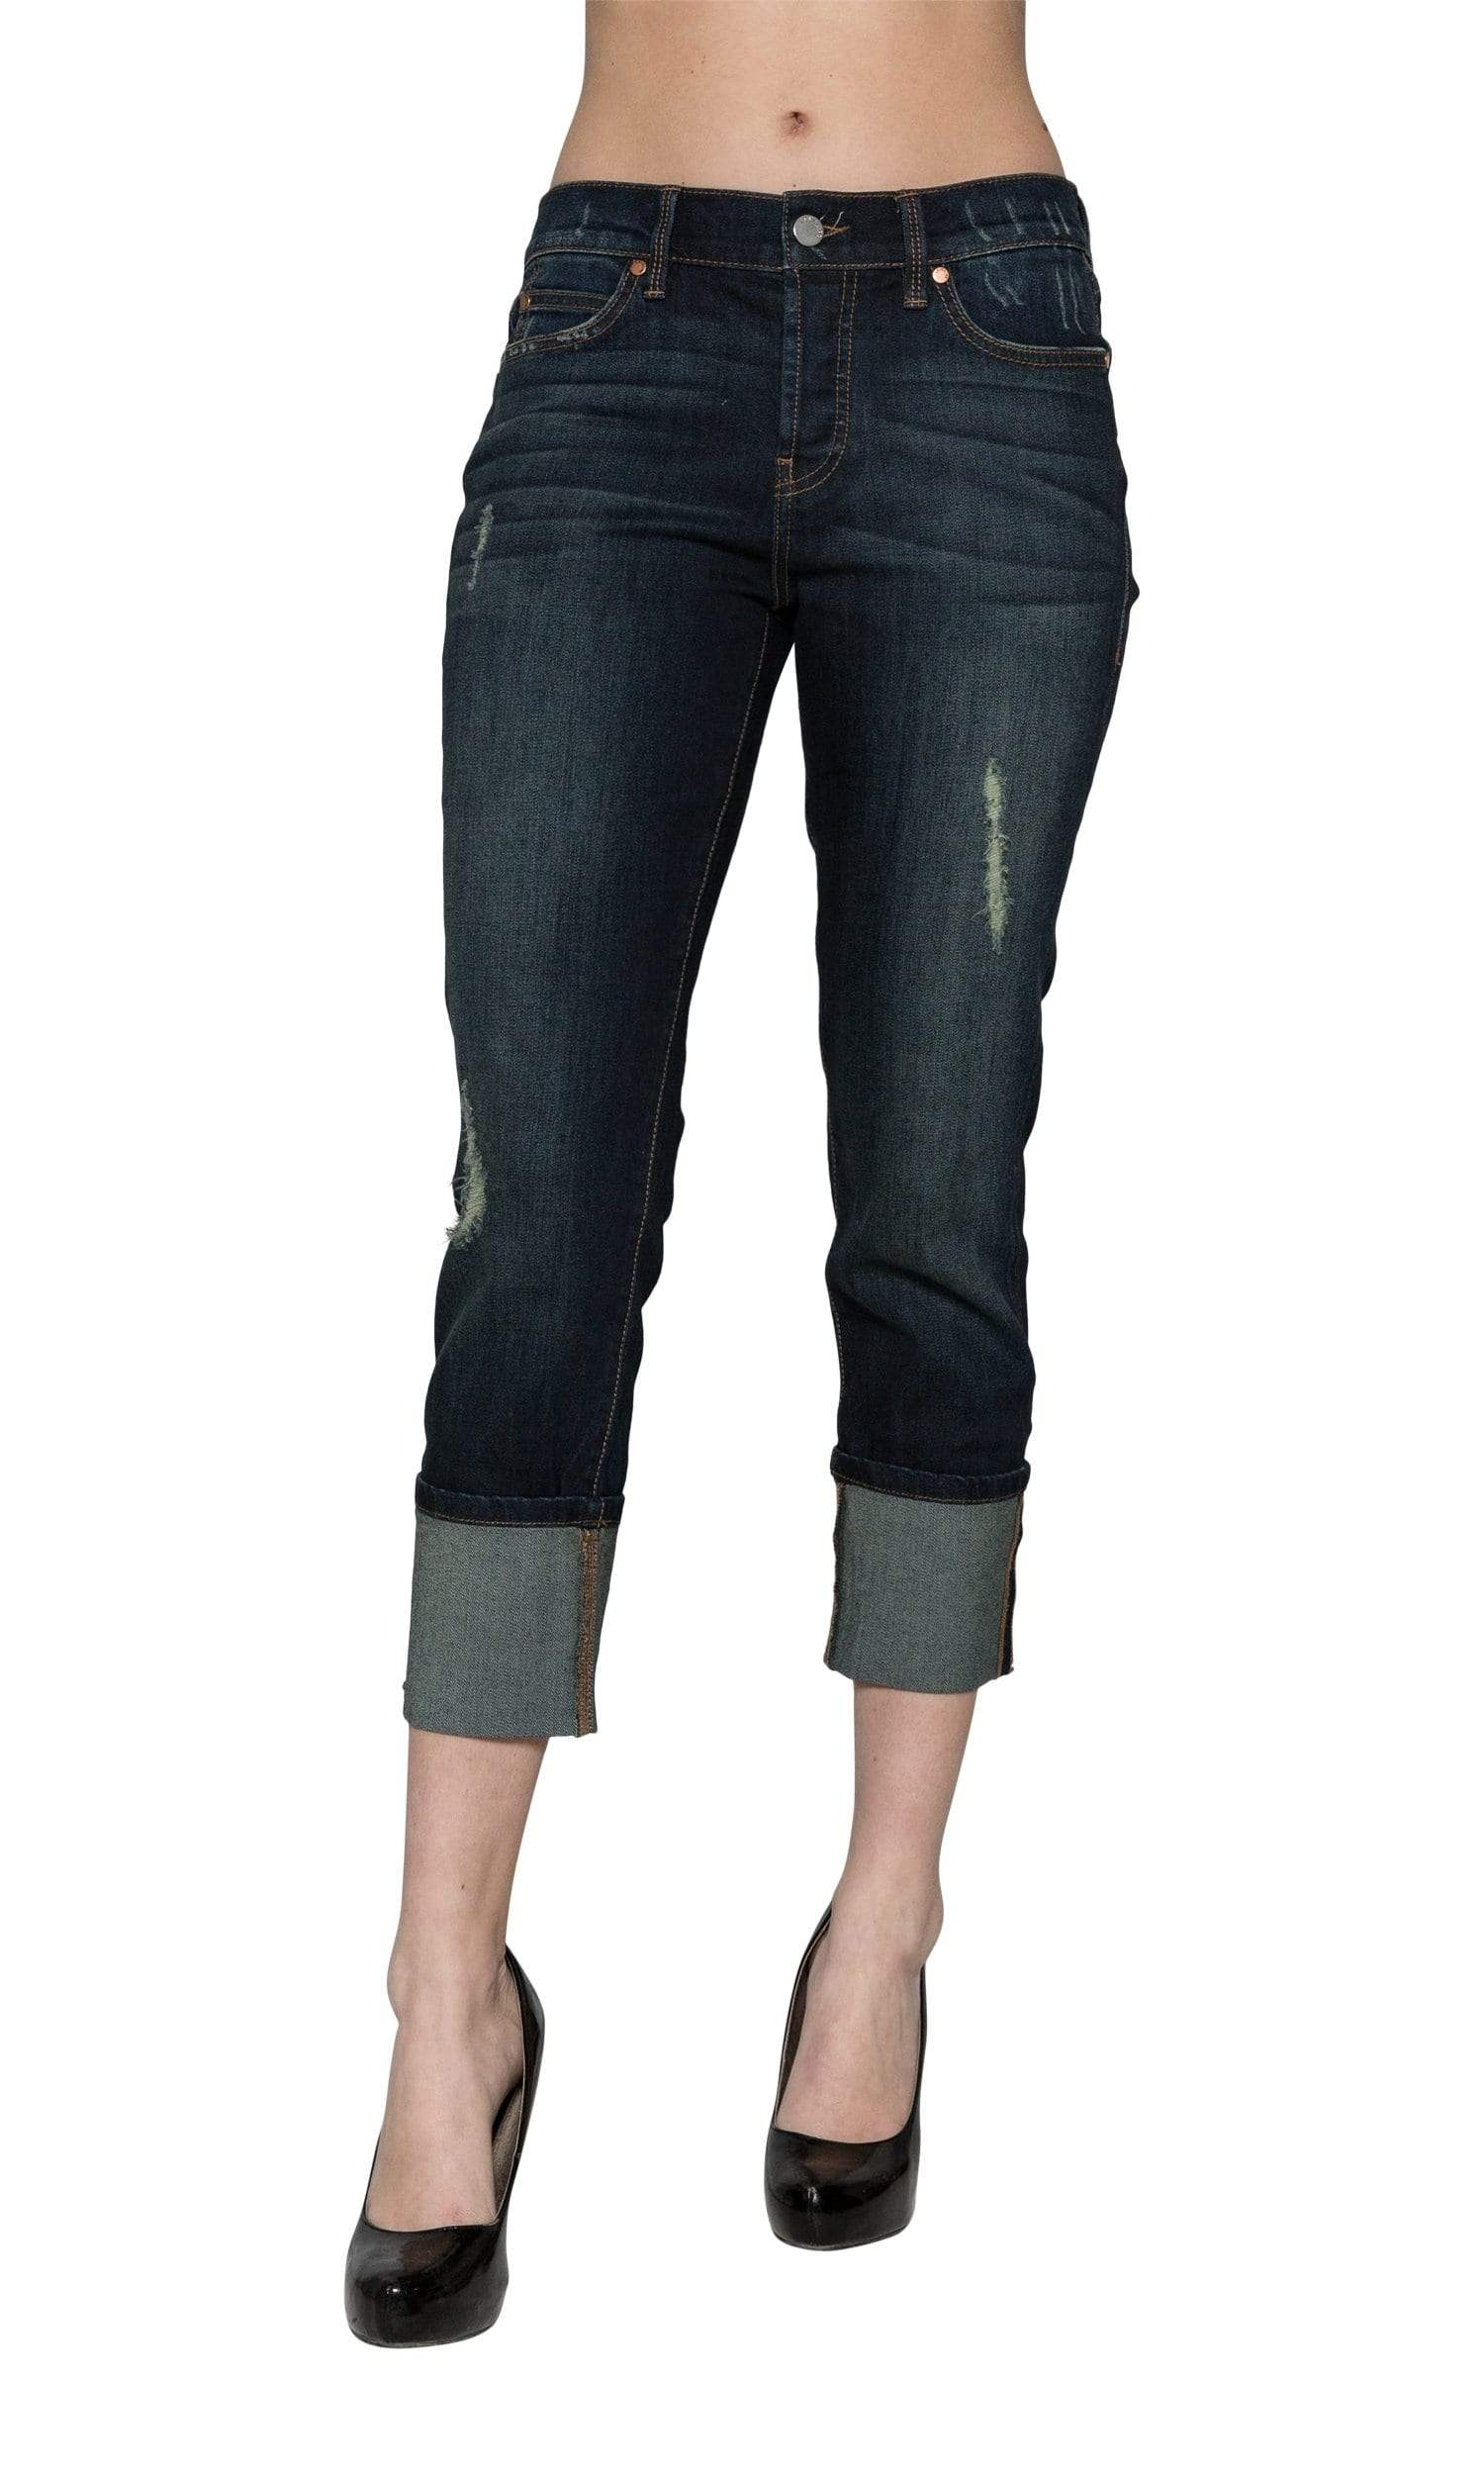 Level 99 Morgan Cuffed Straight Leg Denim - Valley